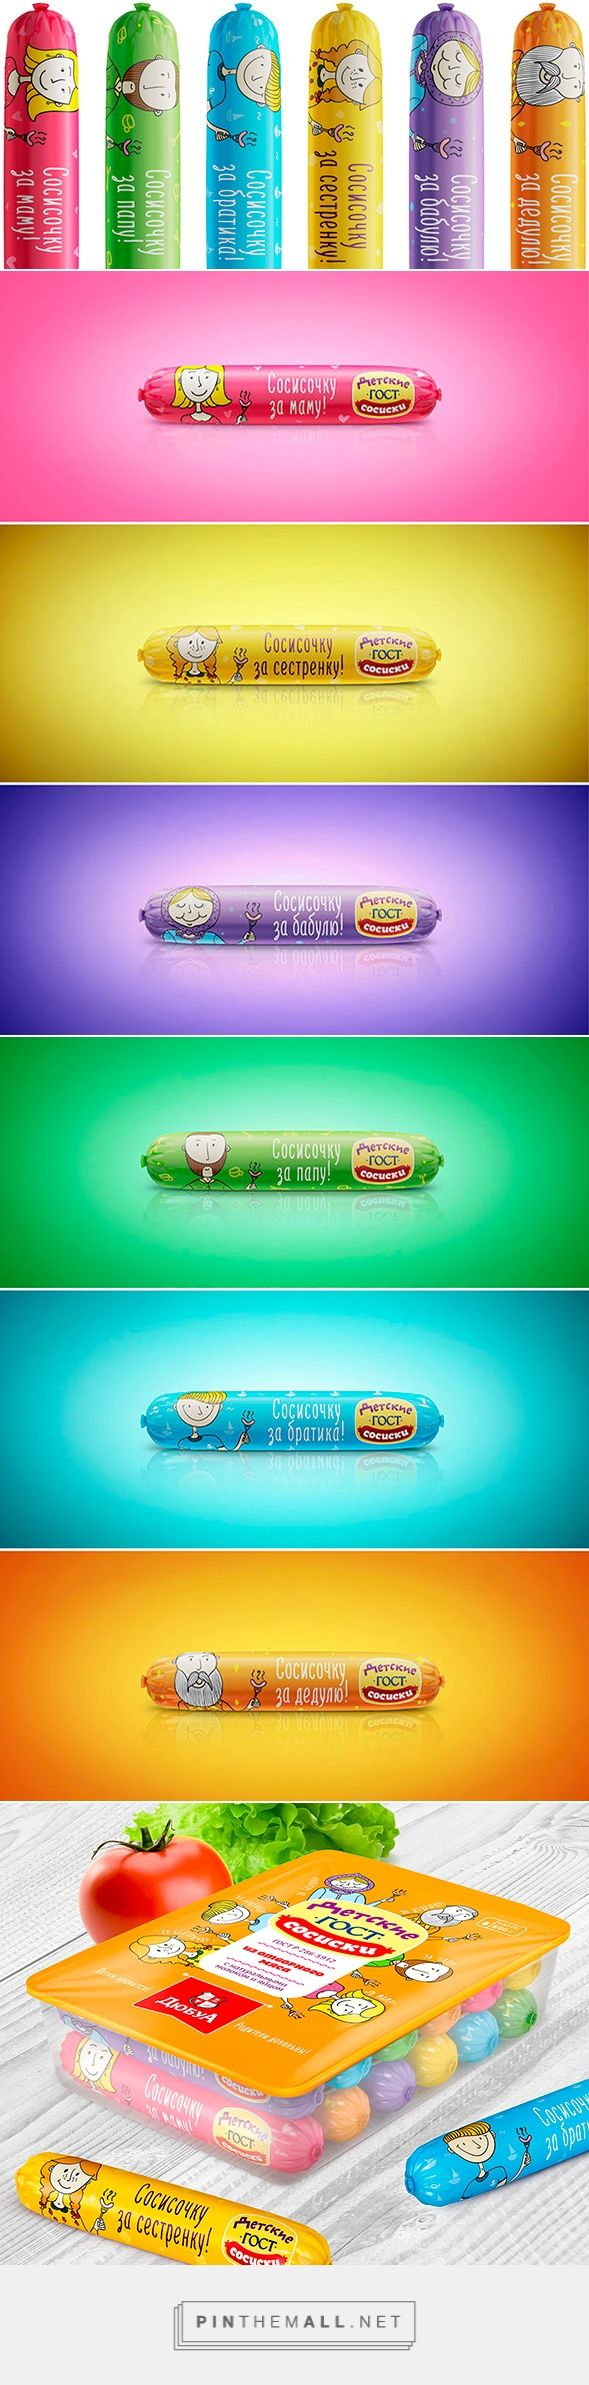 Сосиски Детские ГОСТ via What The Pack? curated by Packaging Diva PD. Multicolored sausages for the packaging smile file : )